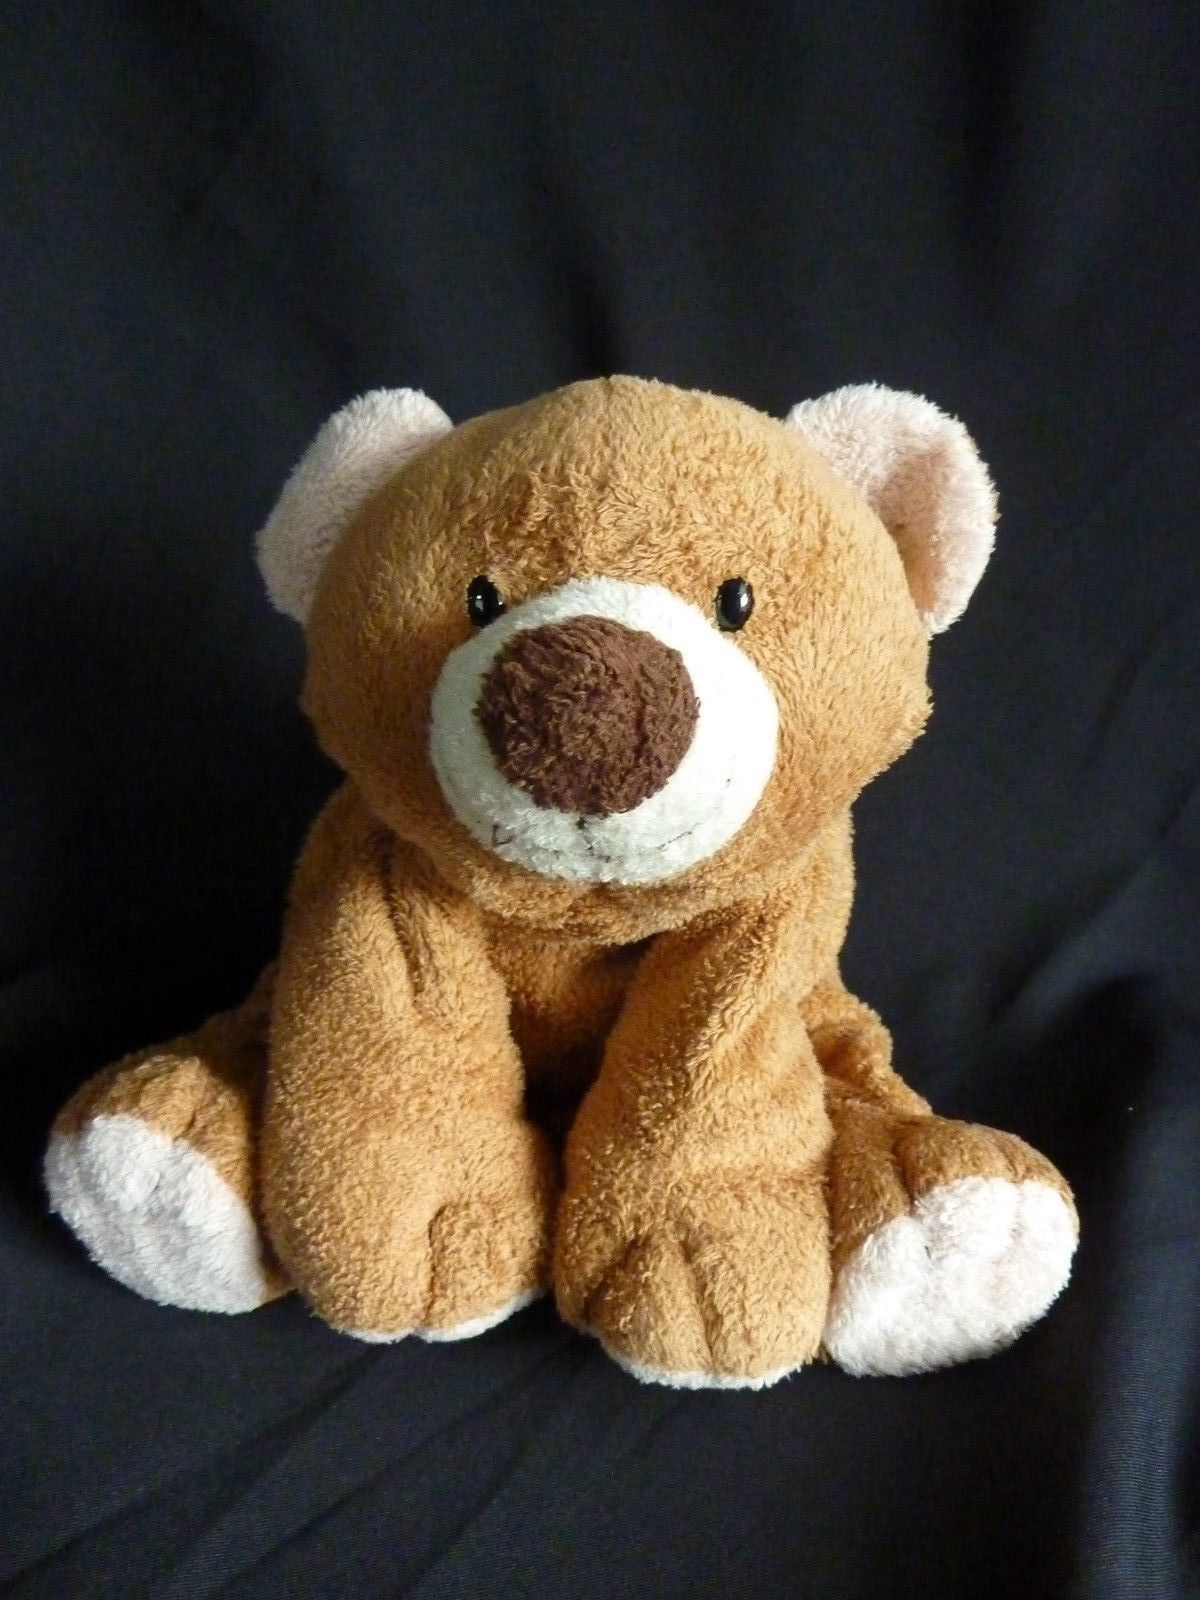 TY Pluffies SLUMBERS Brown Tan Bear Slumber Tylux 2002 Plush Stuffed Animal Toy